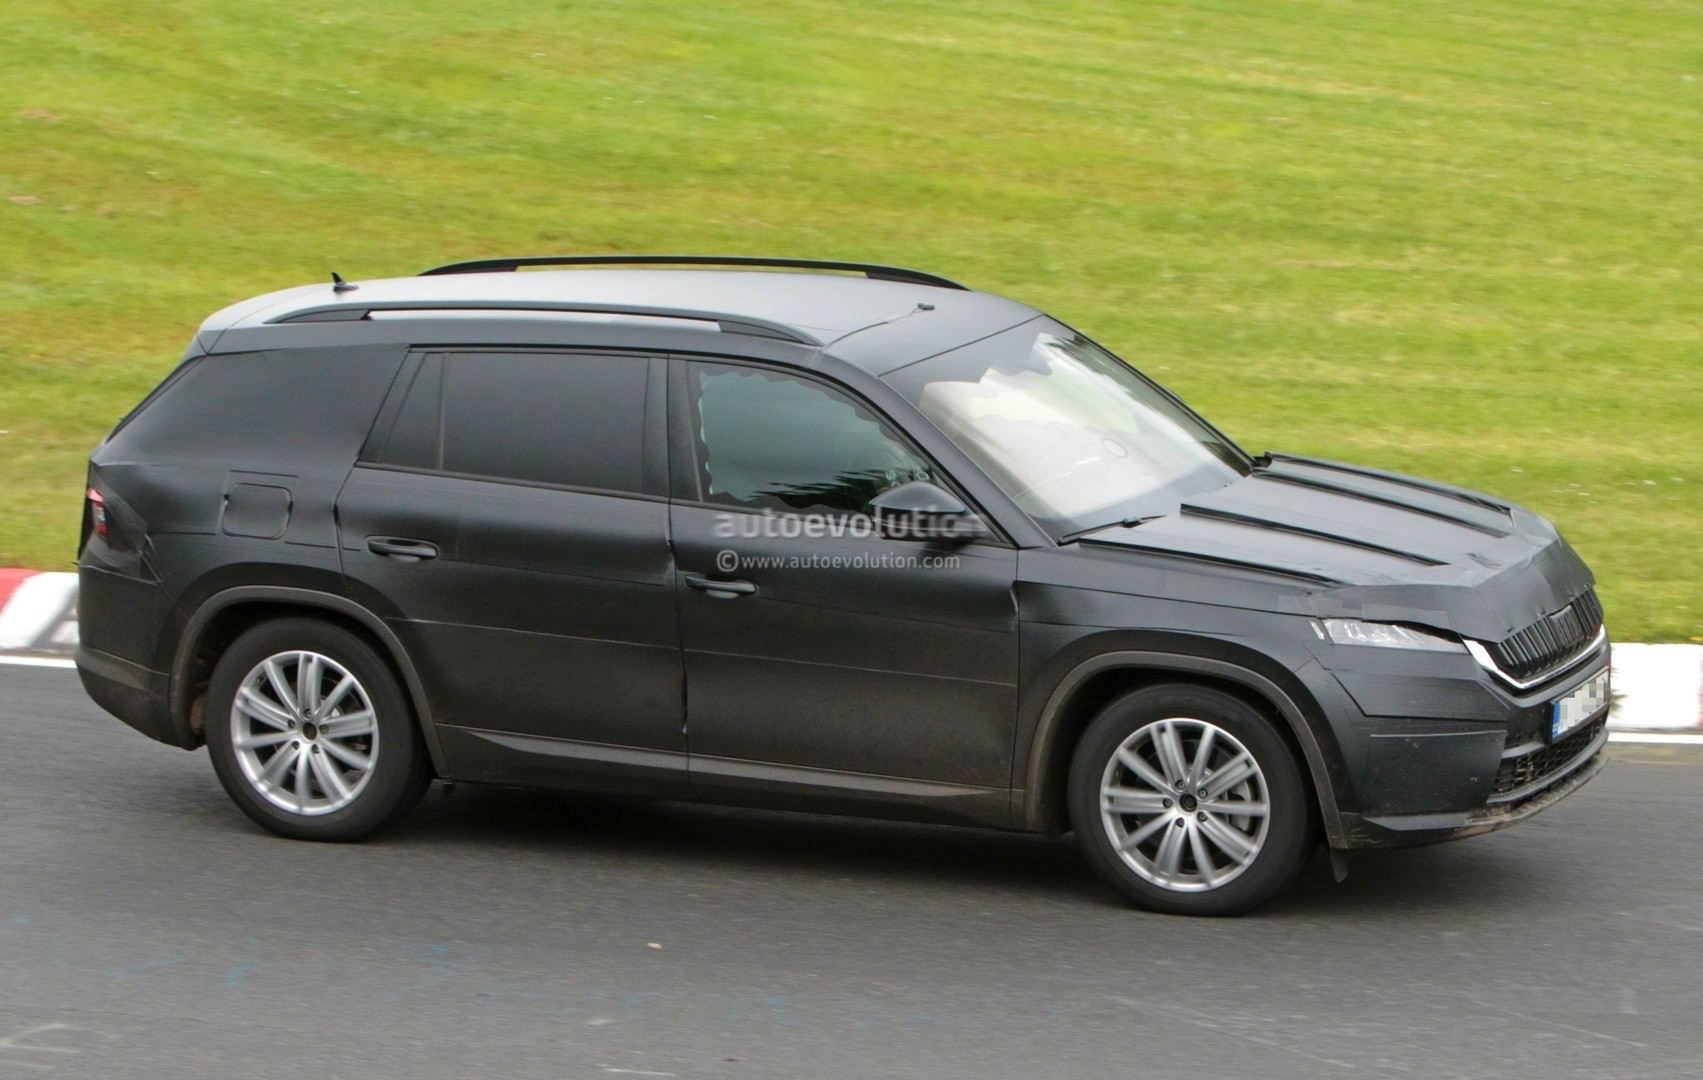 2017 skoda kodiaq spied looks out of place lapping the nurburgring autoevolution. Black Bedroom Furniture Sets. Home Design Ideas